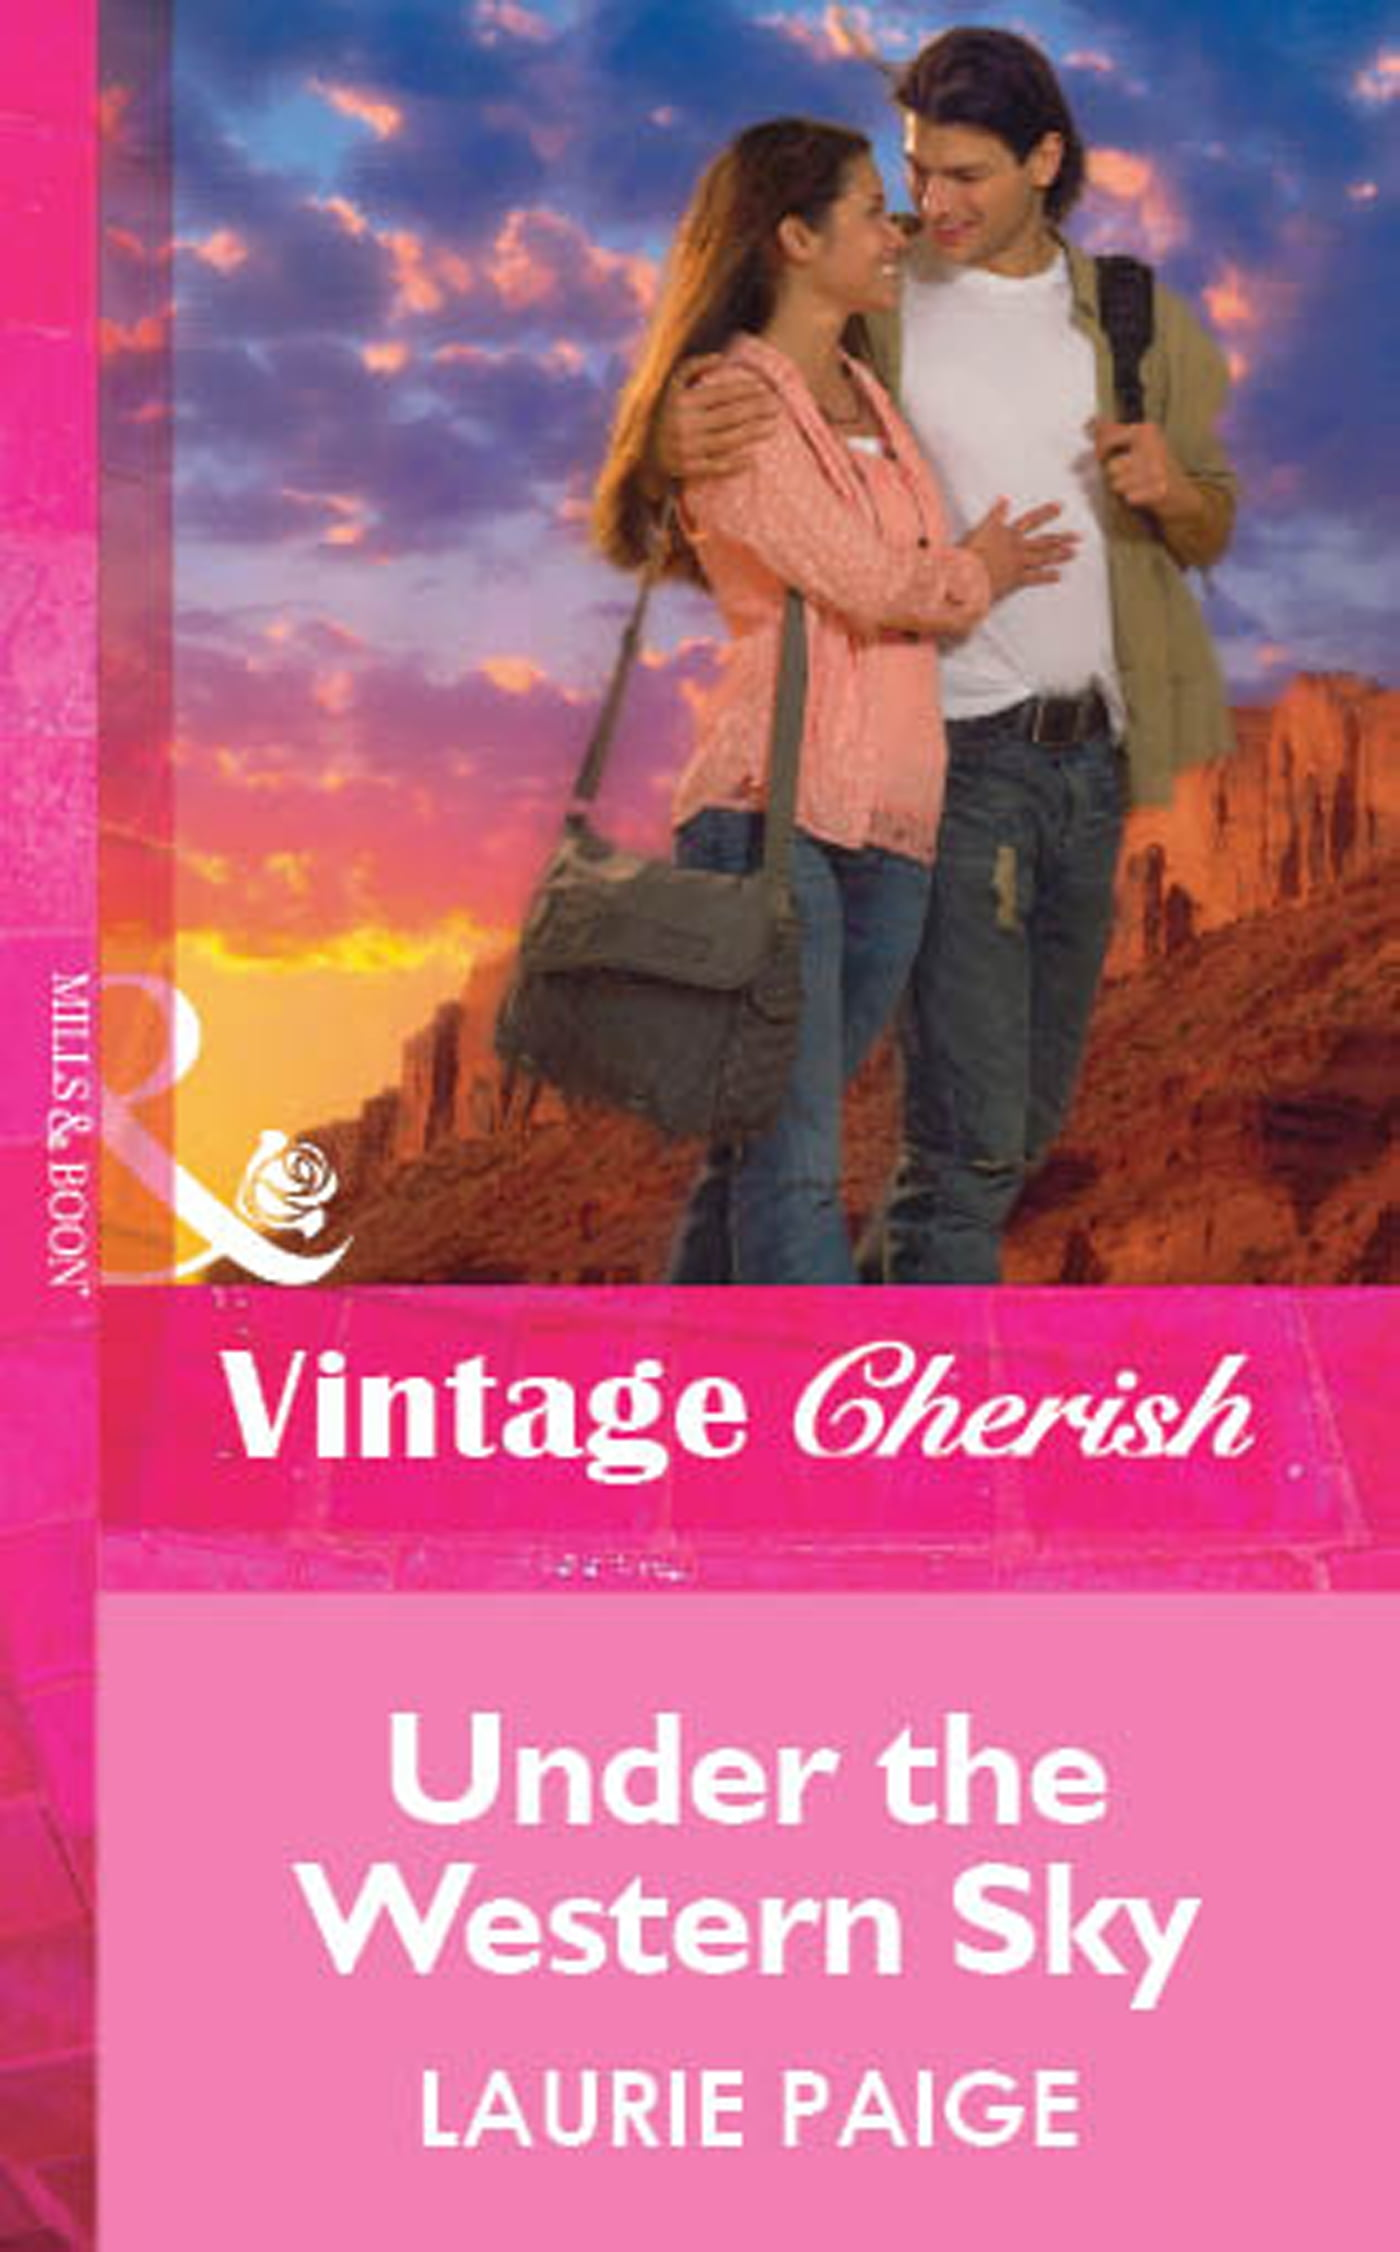 Under The Western Sky (Mills & Boon Vintage Cherish) PDF book by Laurie Paige: Description, discussion and reader ratings